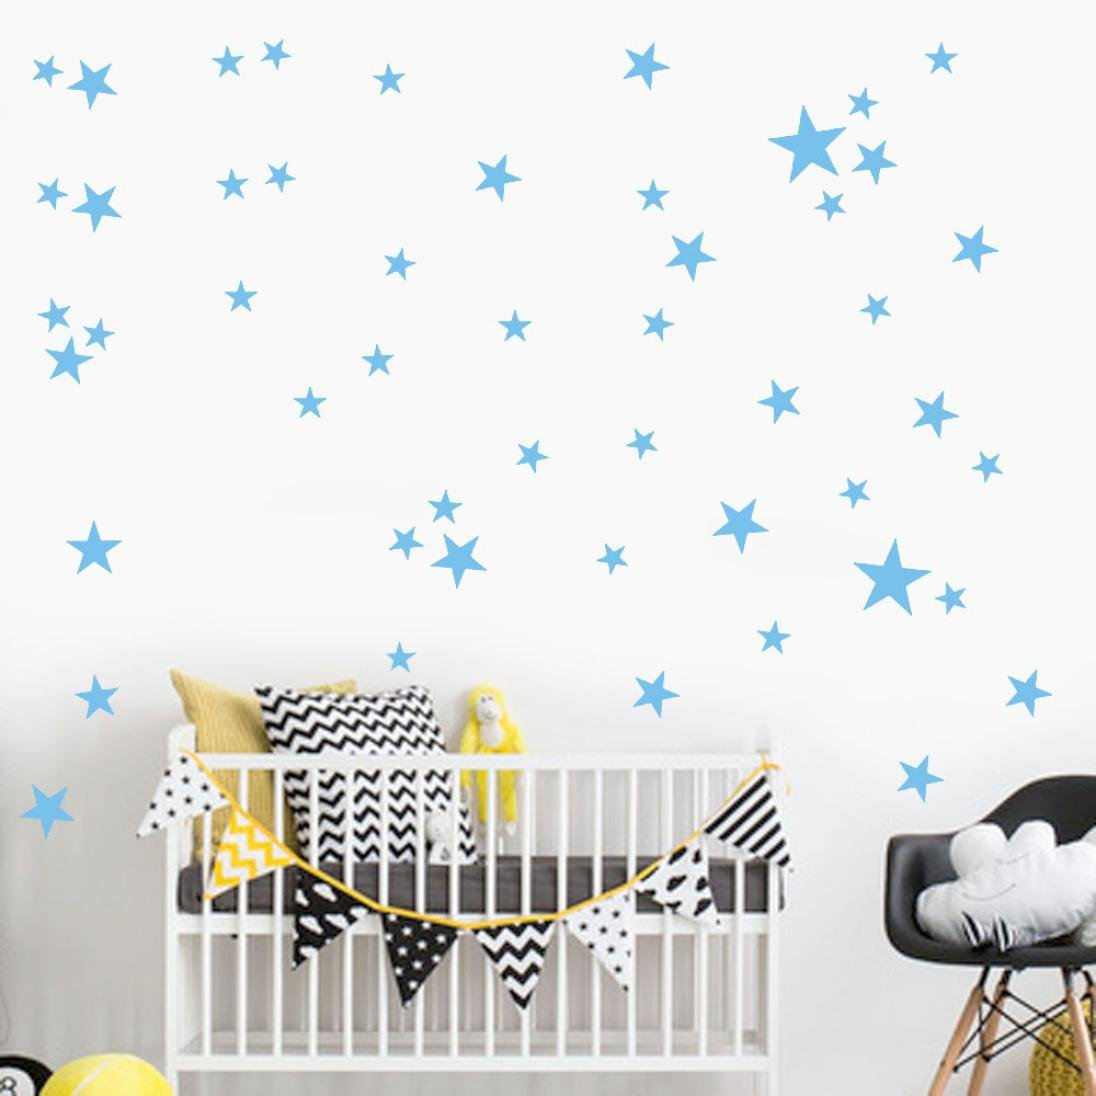 Star Wall Sticker, Iuhan 38Pcs Star Removable Art Vinyl Mural Home Room Decor Kids Rooms Wall Stickers (light blue)